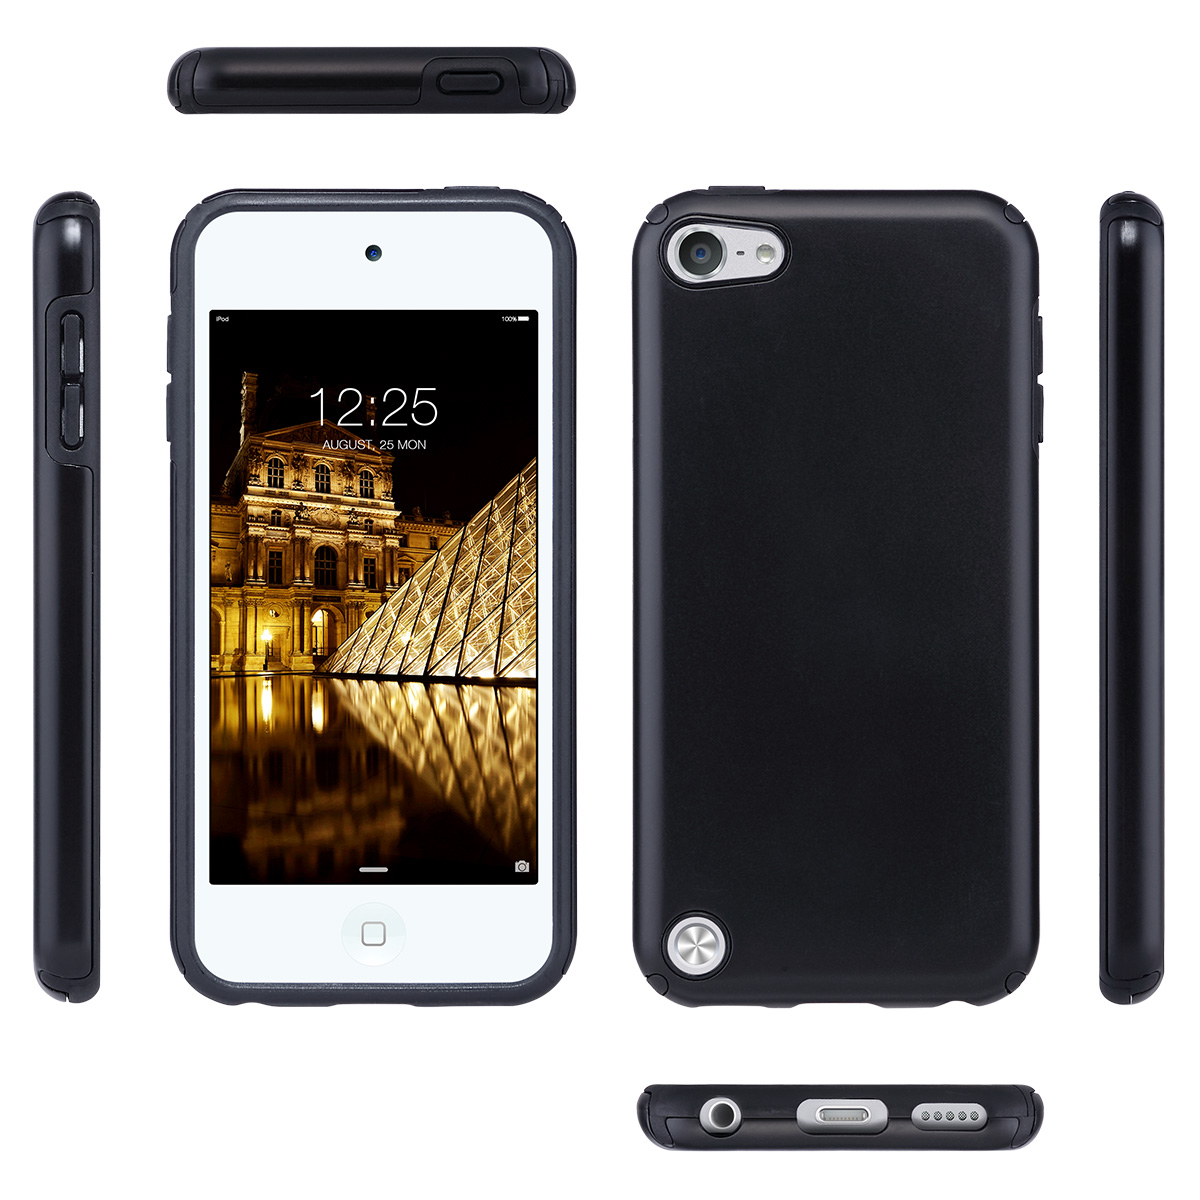 Hybrid-Hard-Protective-Silicon-TPU-Case-for-Apple-iPod-Touch-5-6th-Generation thumbnail 15